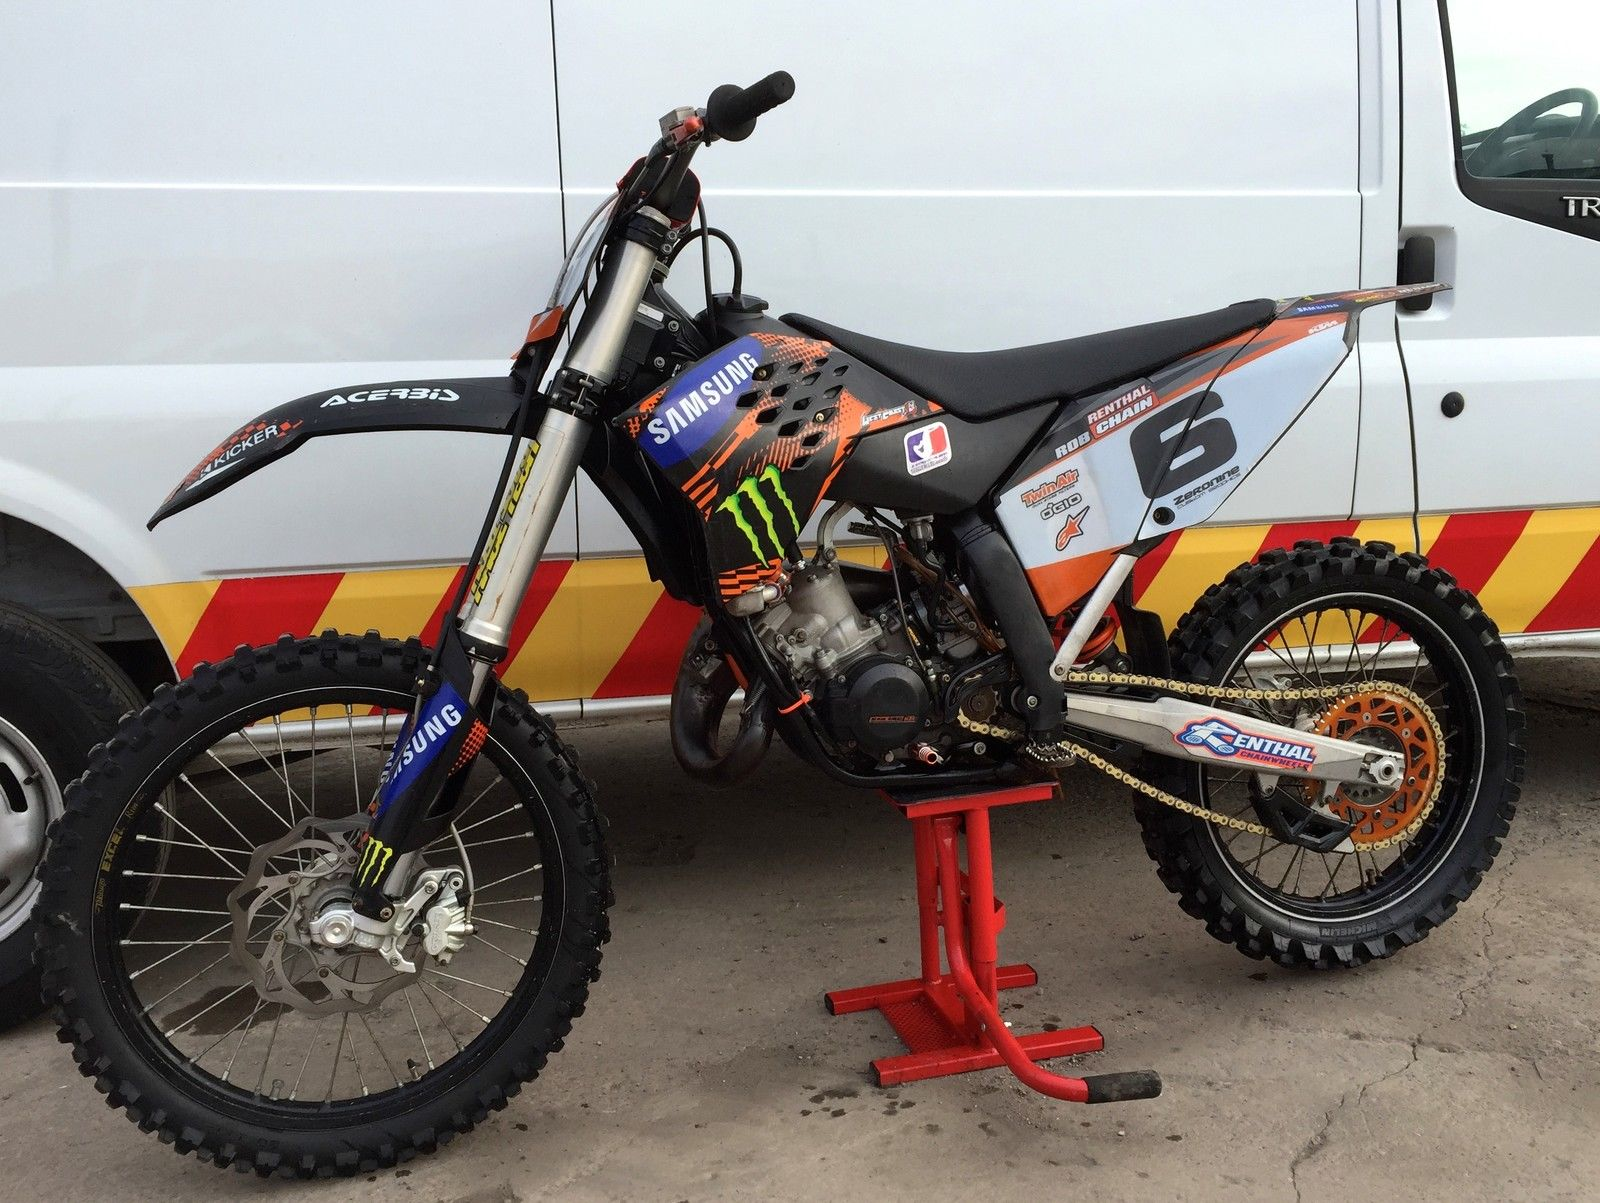 Ktm Motocross Bikes For Sale Ebay